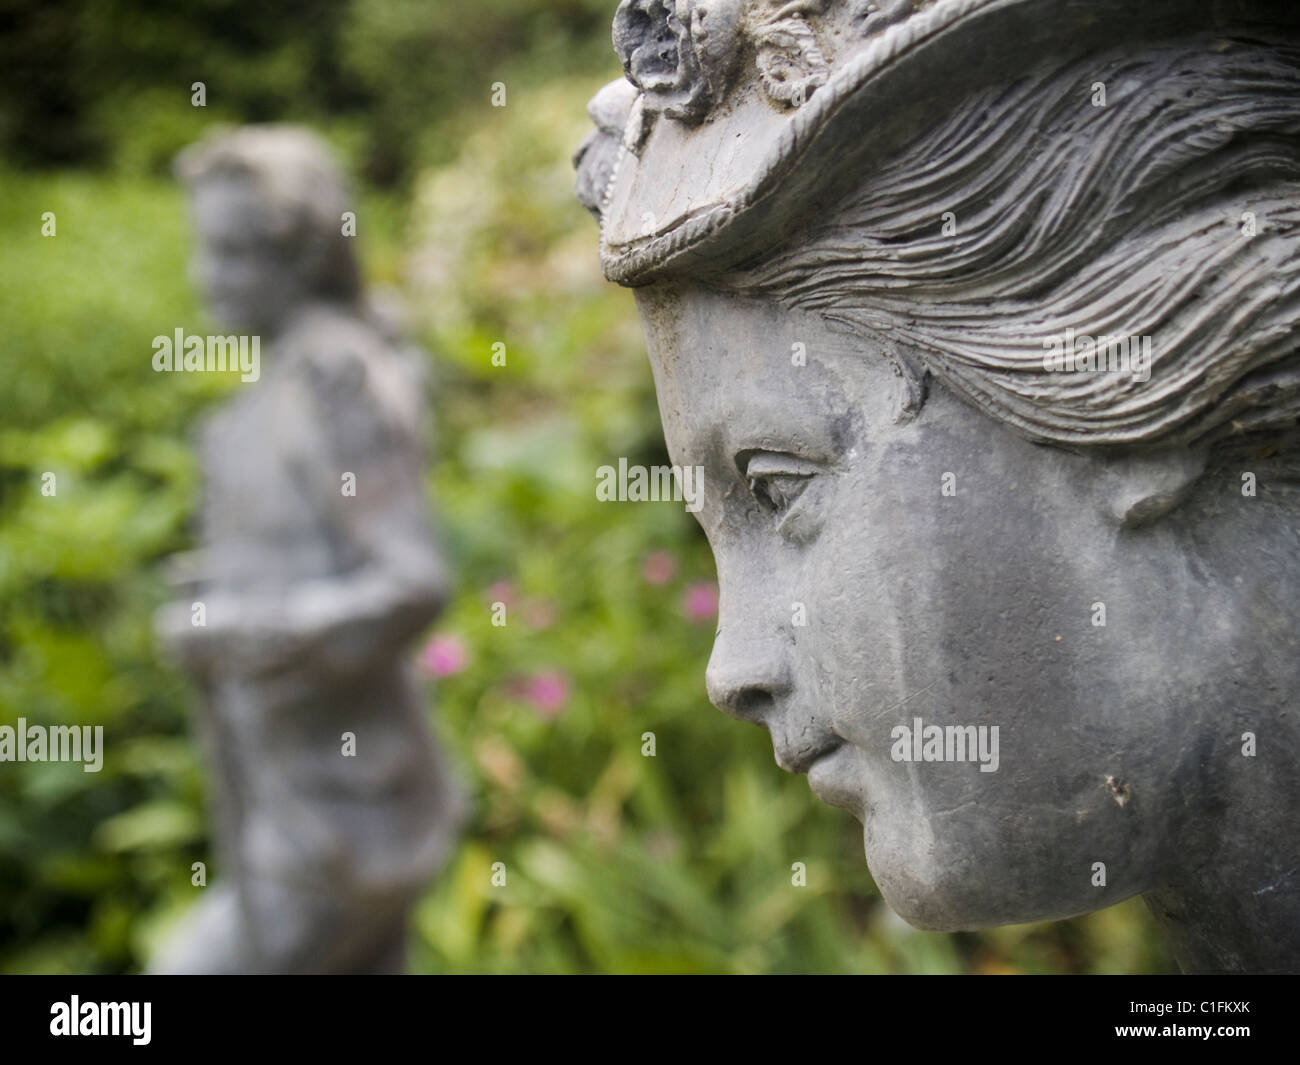 Statues In A Traditional English Garden   Stock Image